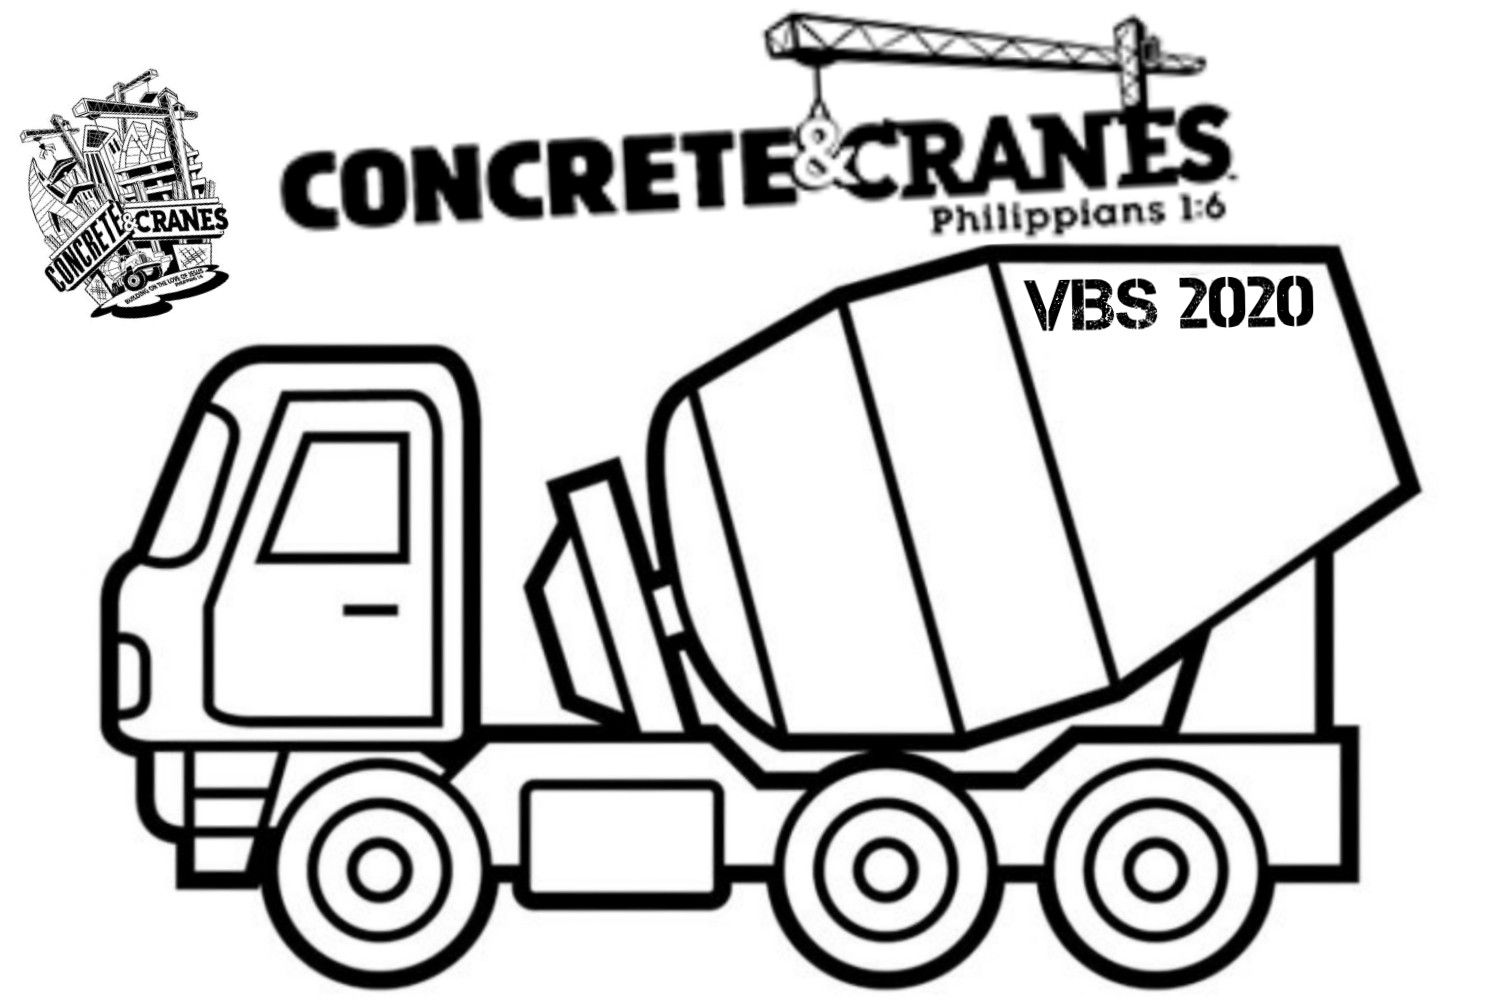 A Custom Concrete And Cranes Vbs Coloring Page Great To